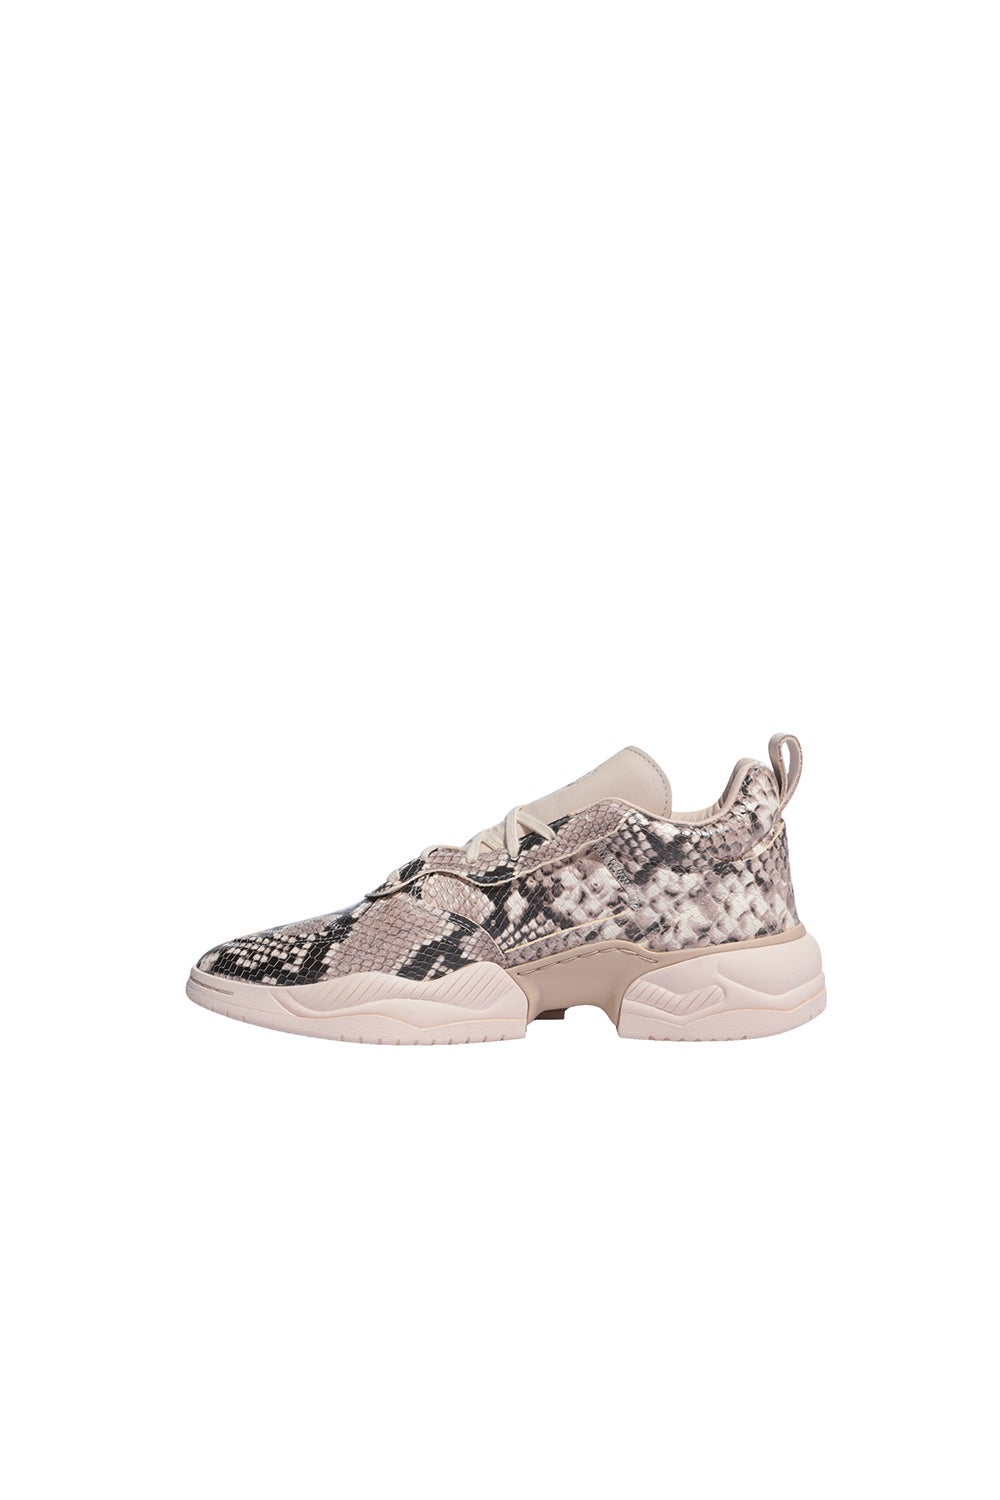 adidas Supercourt RX Shoes Core Black/Linen/Pale Nude